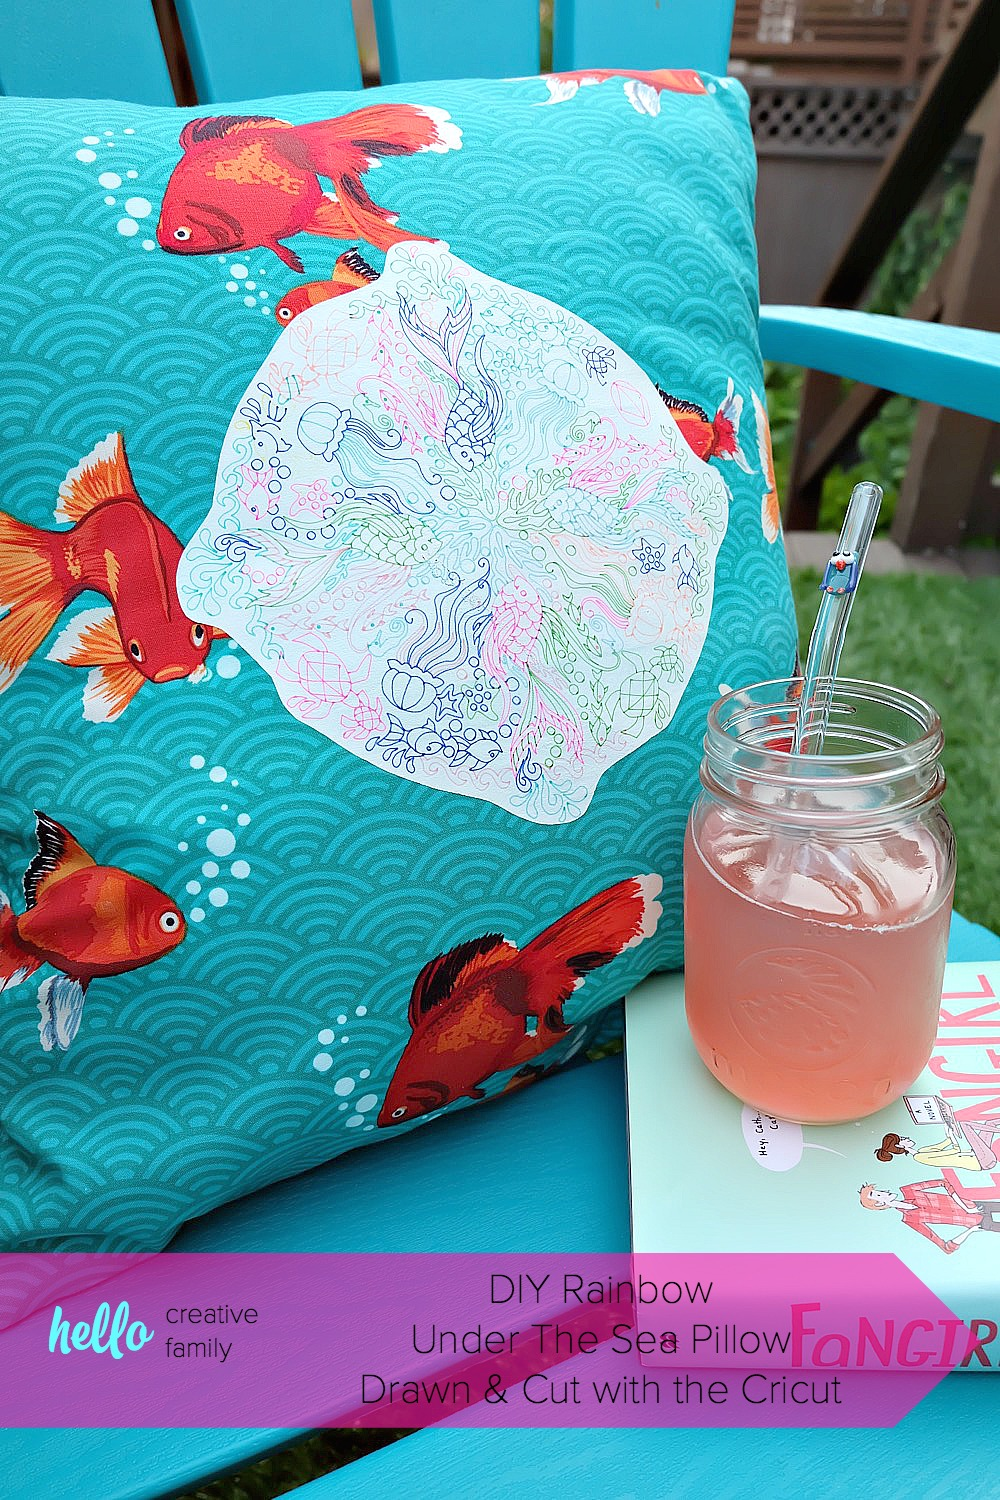 Create a gorgeous DIY Rainbow Under the Sea Pillow using your Cricut Explore to draw a coloring page design on printable heat transfer vinyl! This is an easy project that makes bright and colorful handmade gift idea. Includes instructions on how to sew an envelope style throw pillow cover. #CricutMade